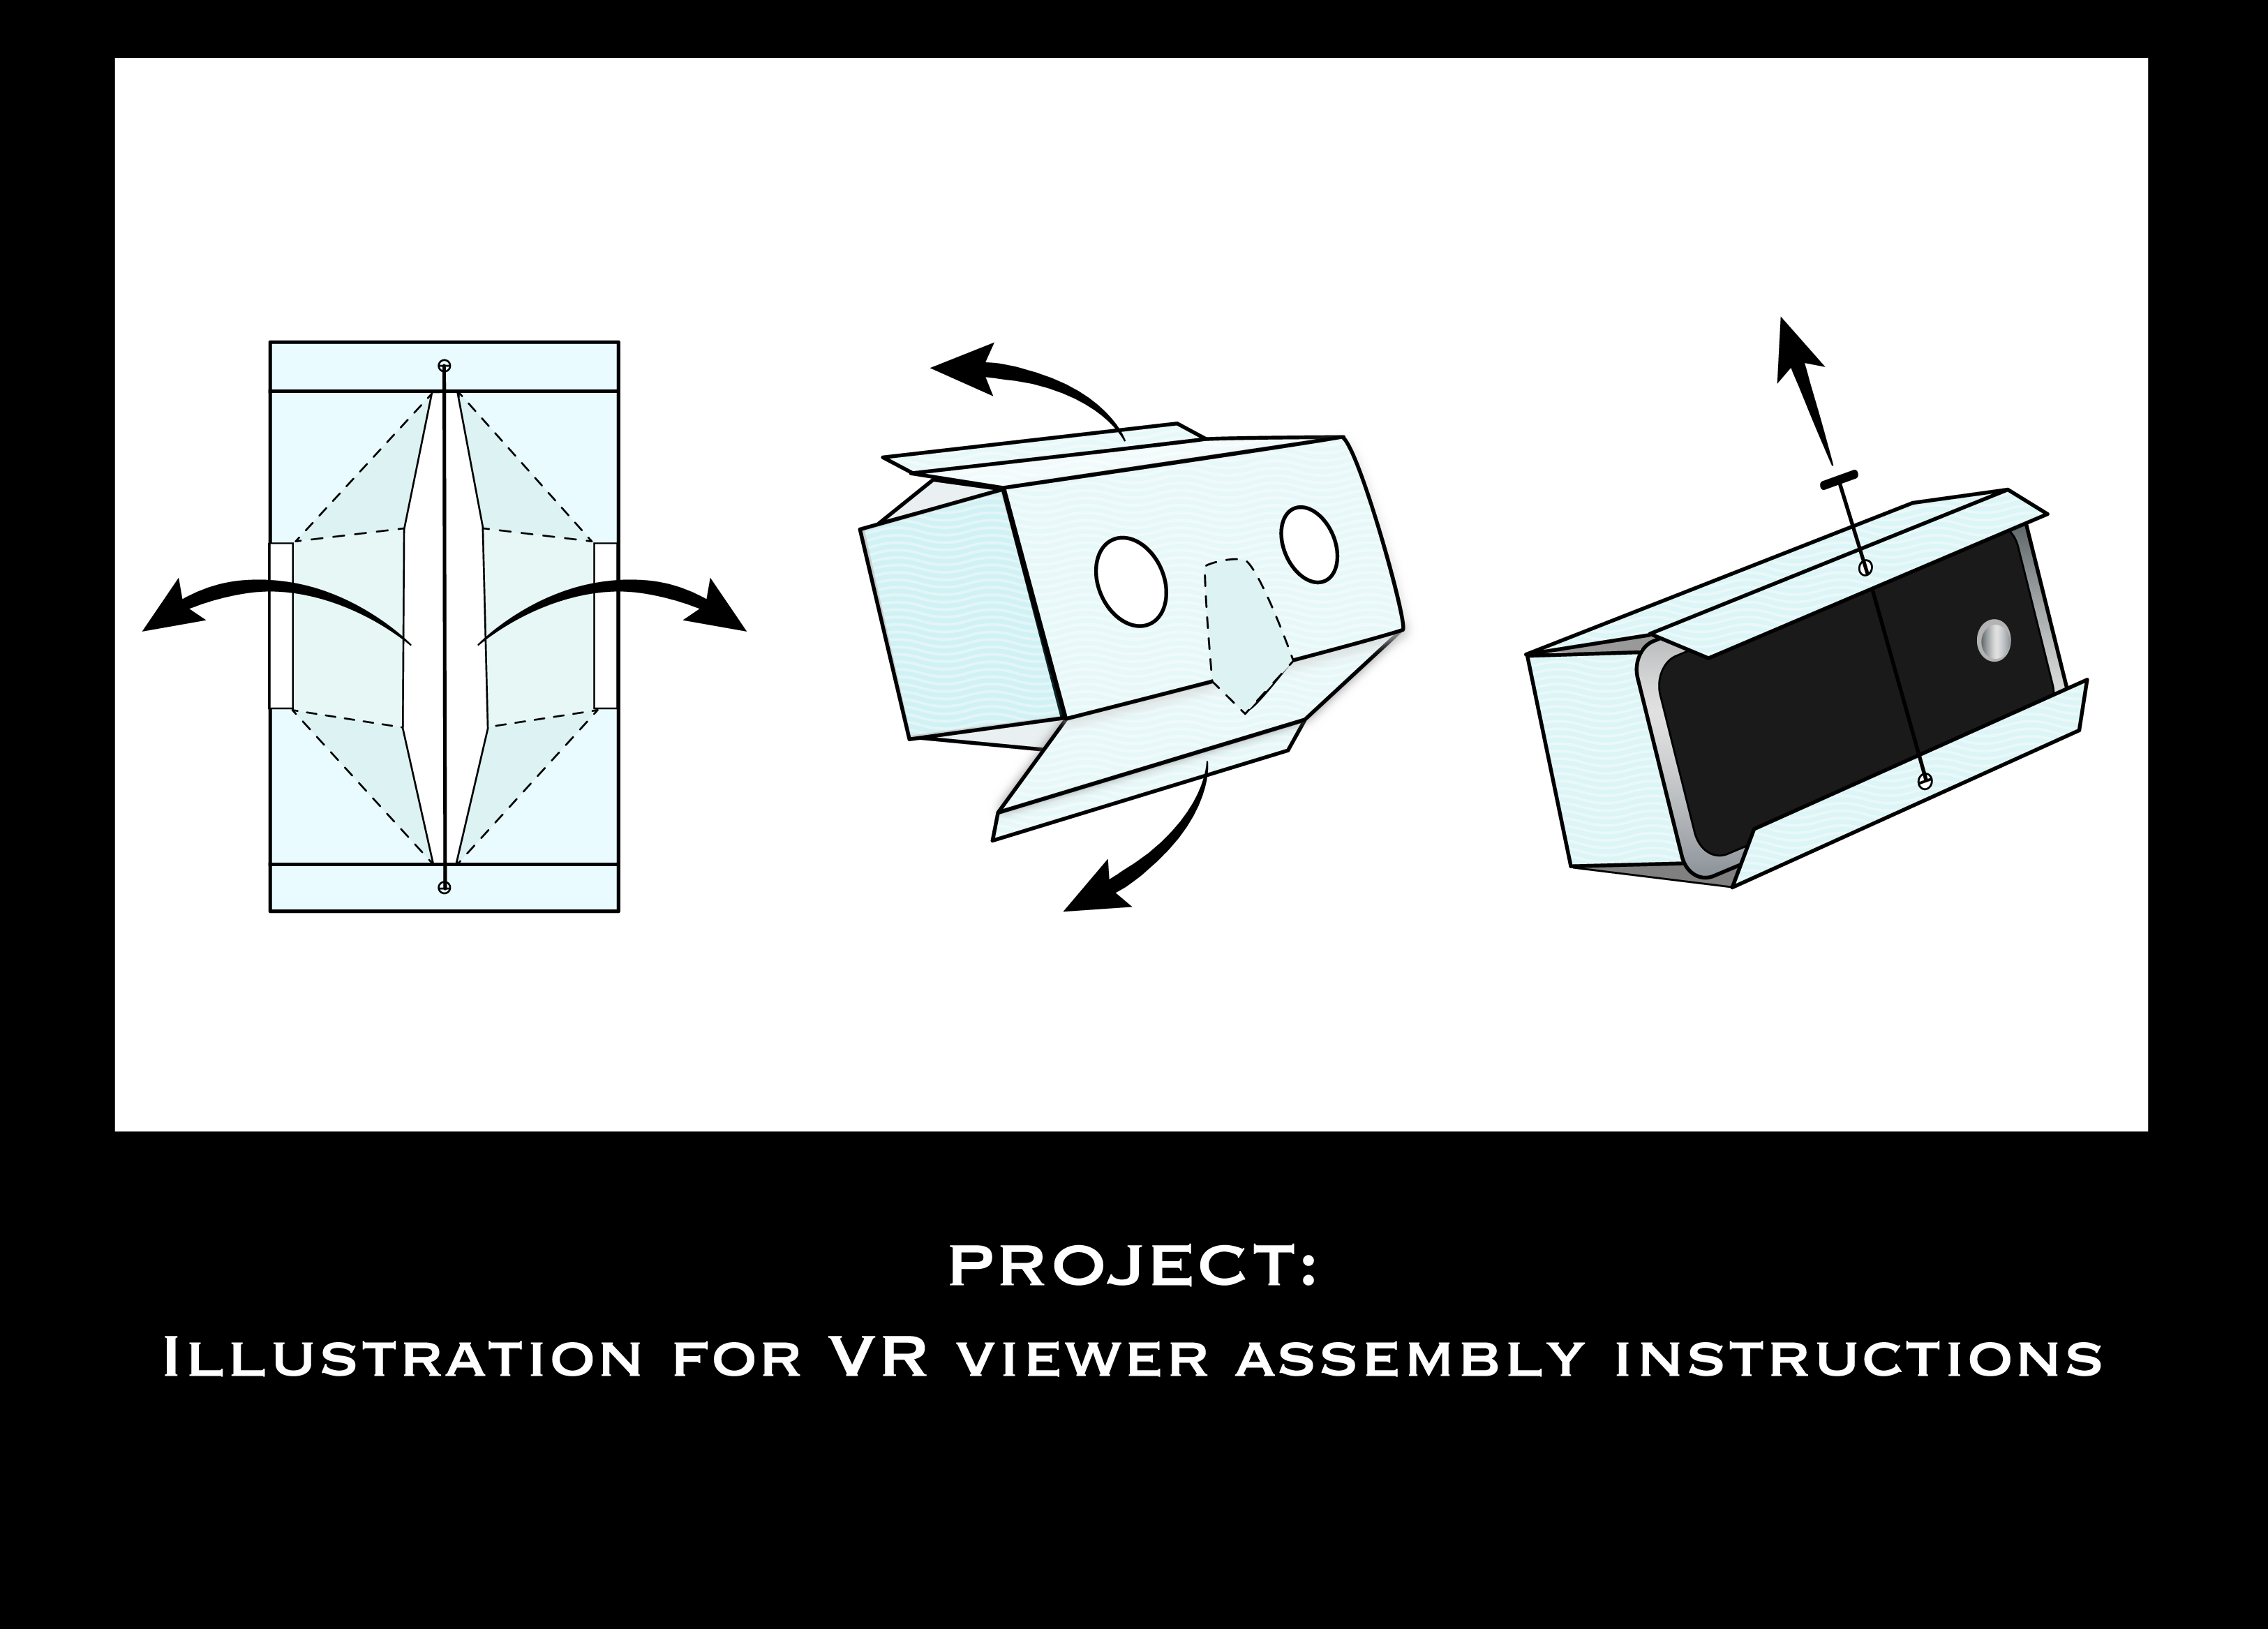 VR viewer instructions illustration